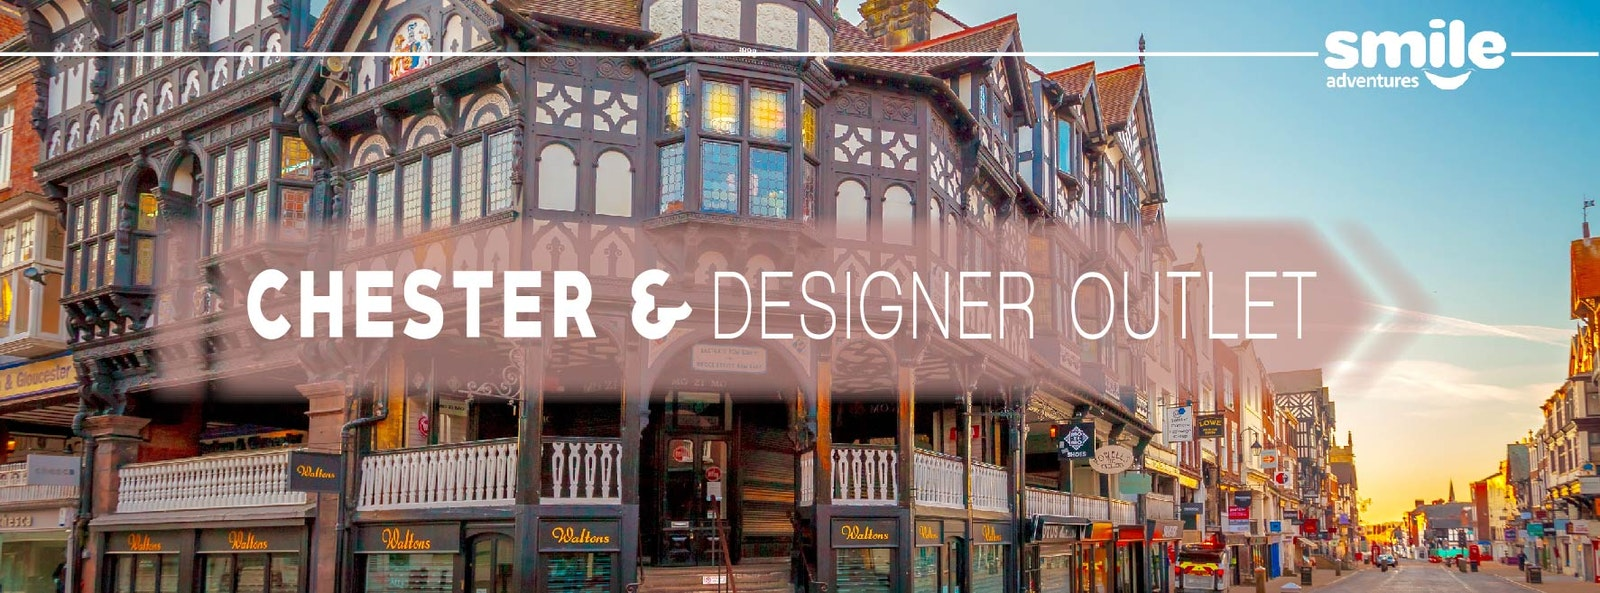 Chester Day Trip & Designer Outlet – From Manchester